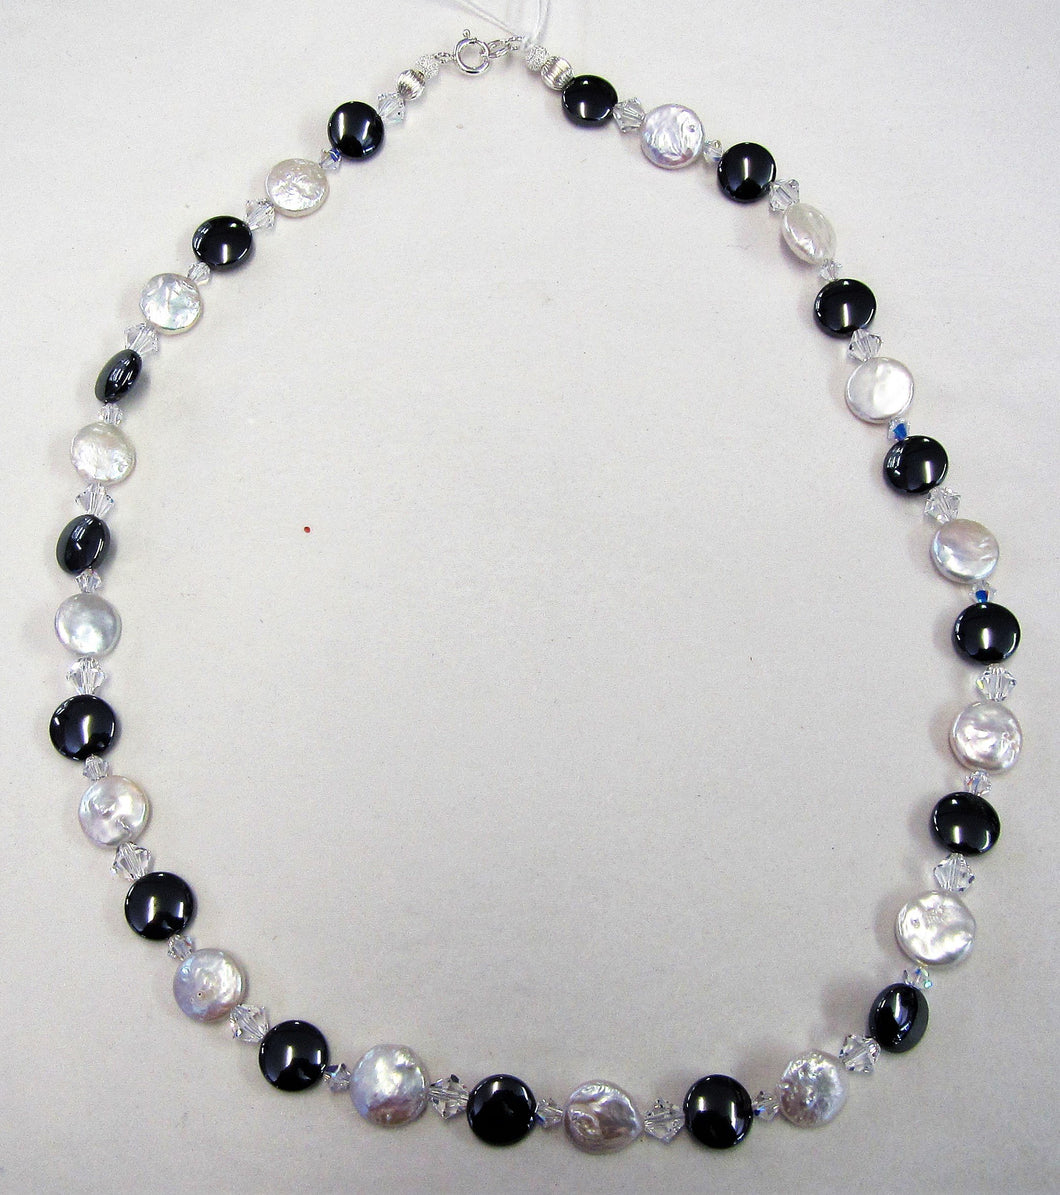 Handcrafted necklace with freshwater pearls, swarovski crystals and hematite